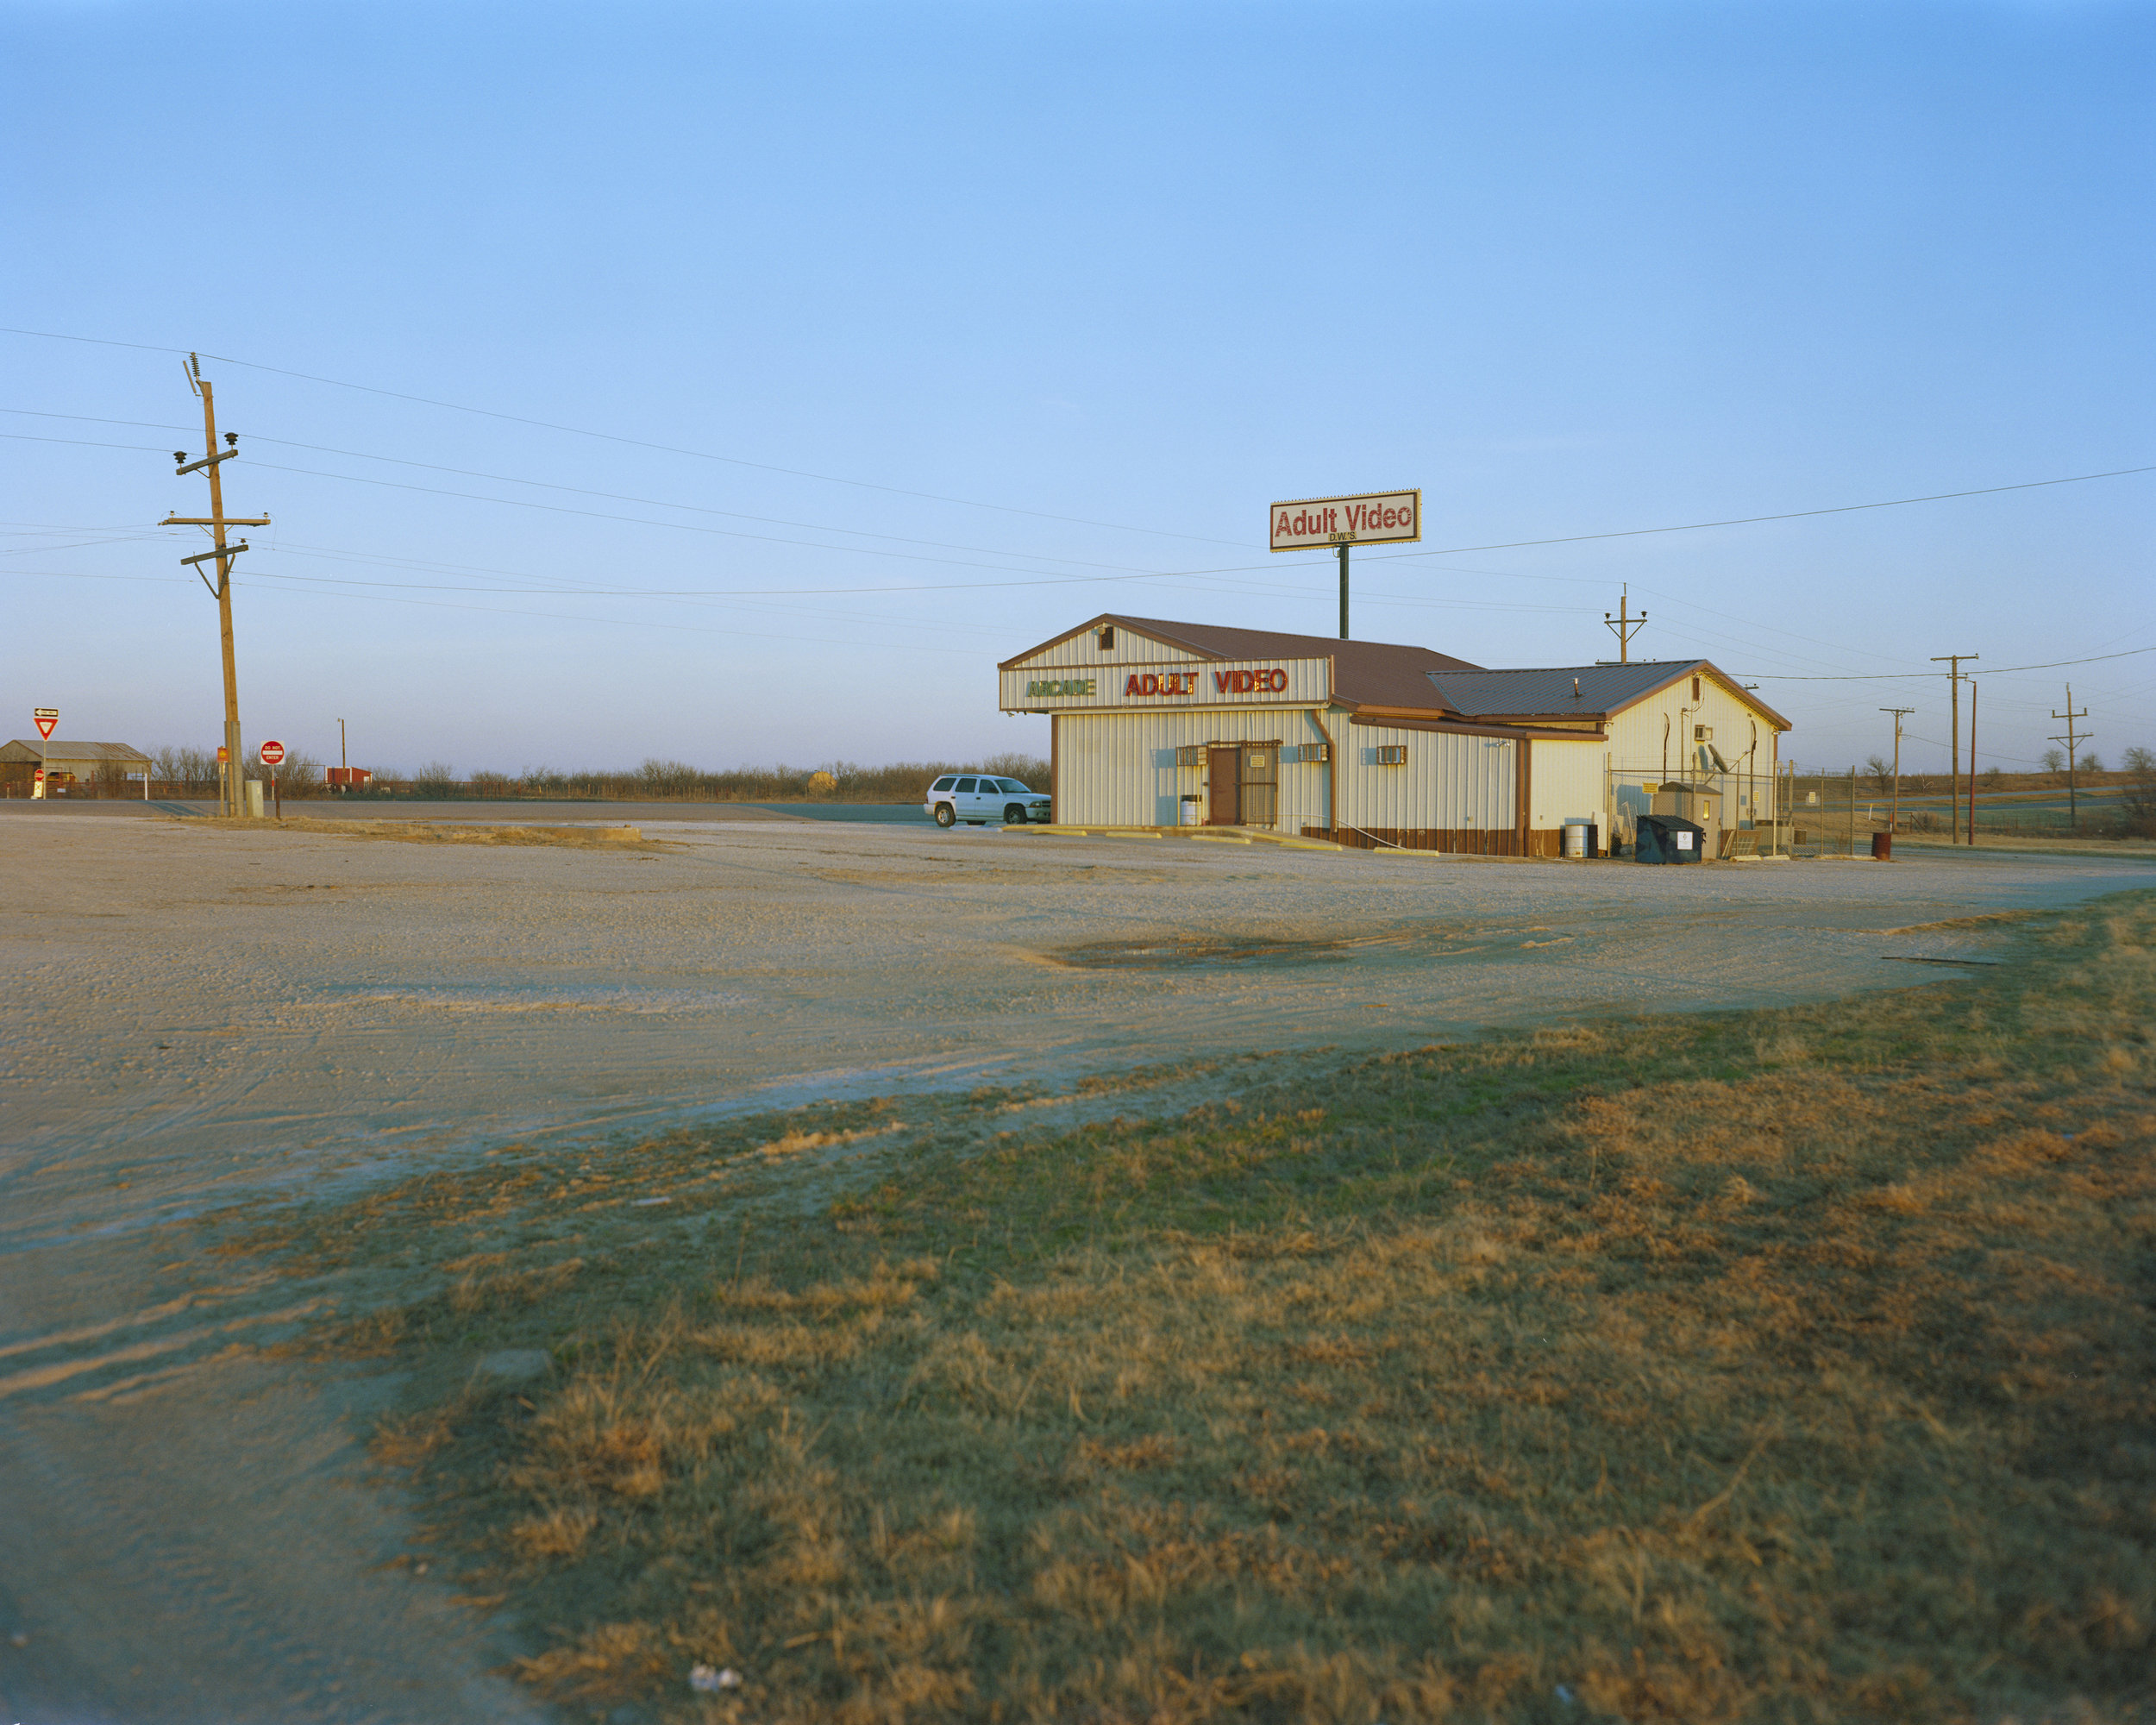 Adult Video, Highway 287, TX, 2017 - 4x5 film